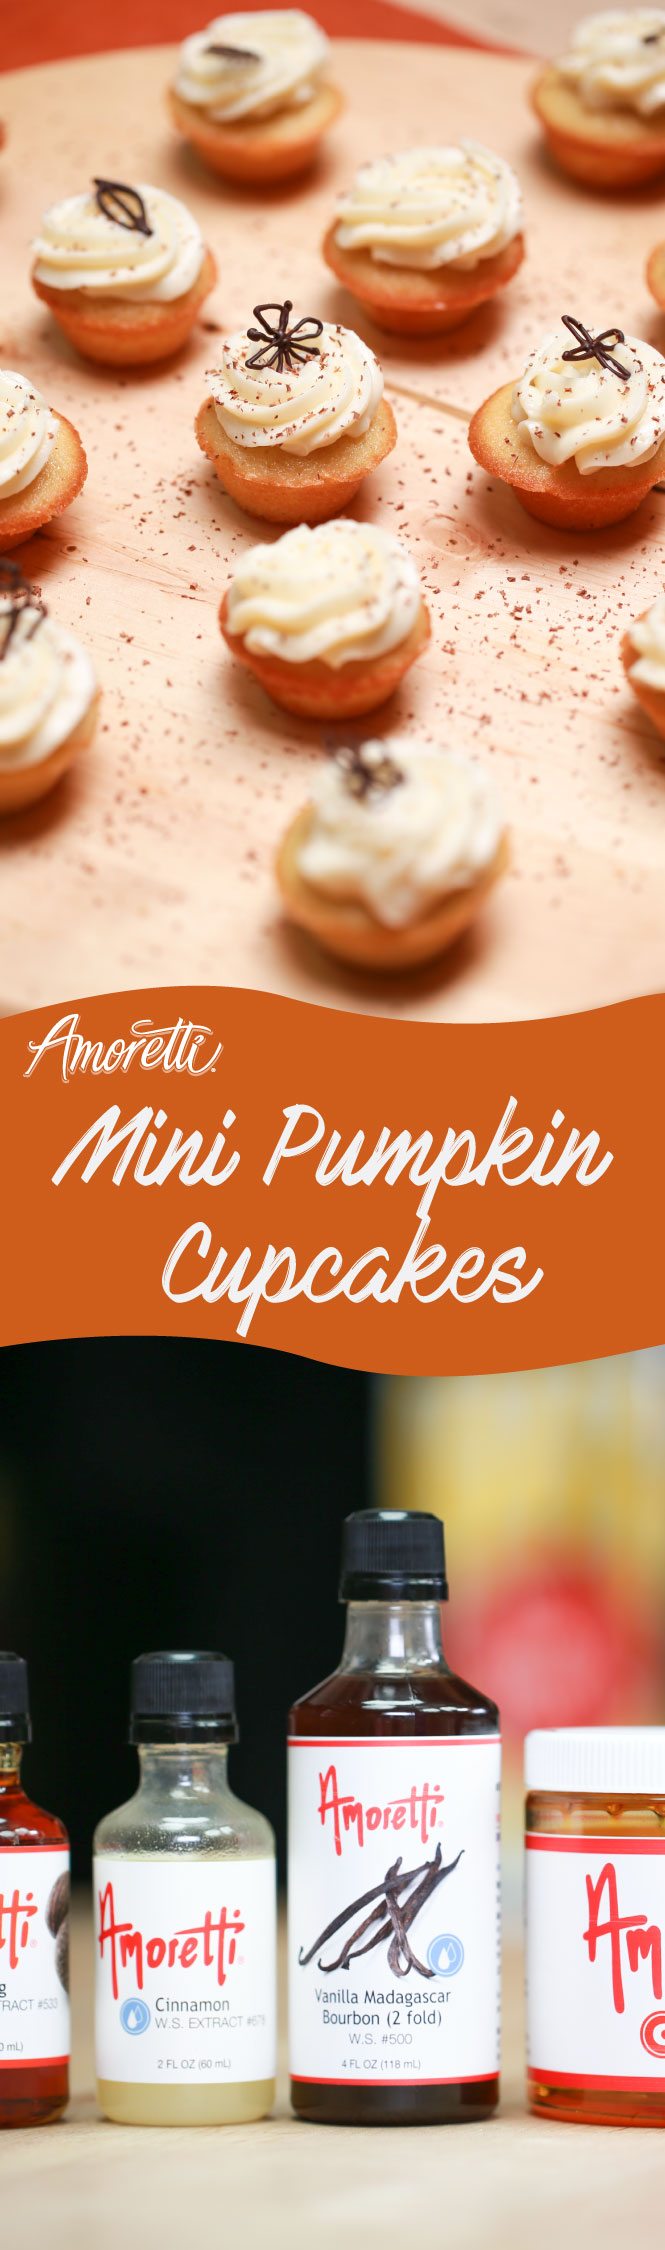 Packed with pumpkin pie flavor, these are great tiny morsels to enjoy with the family!